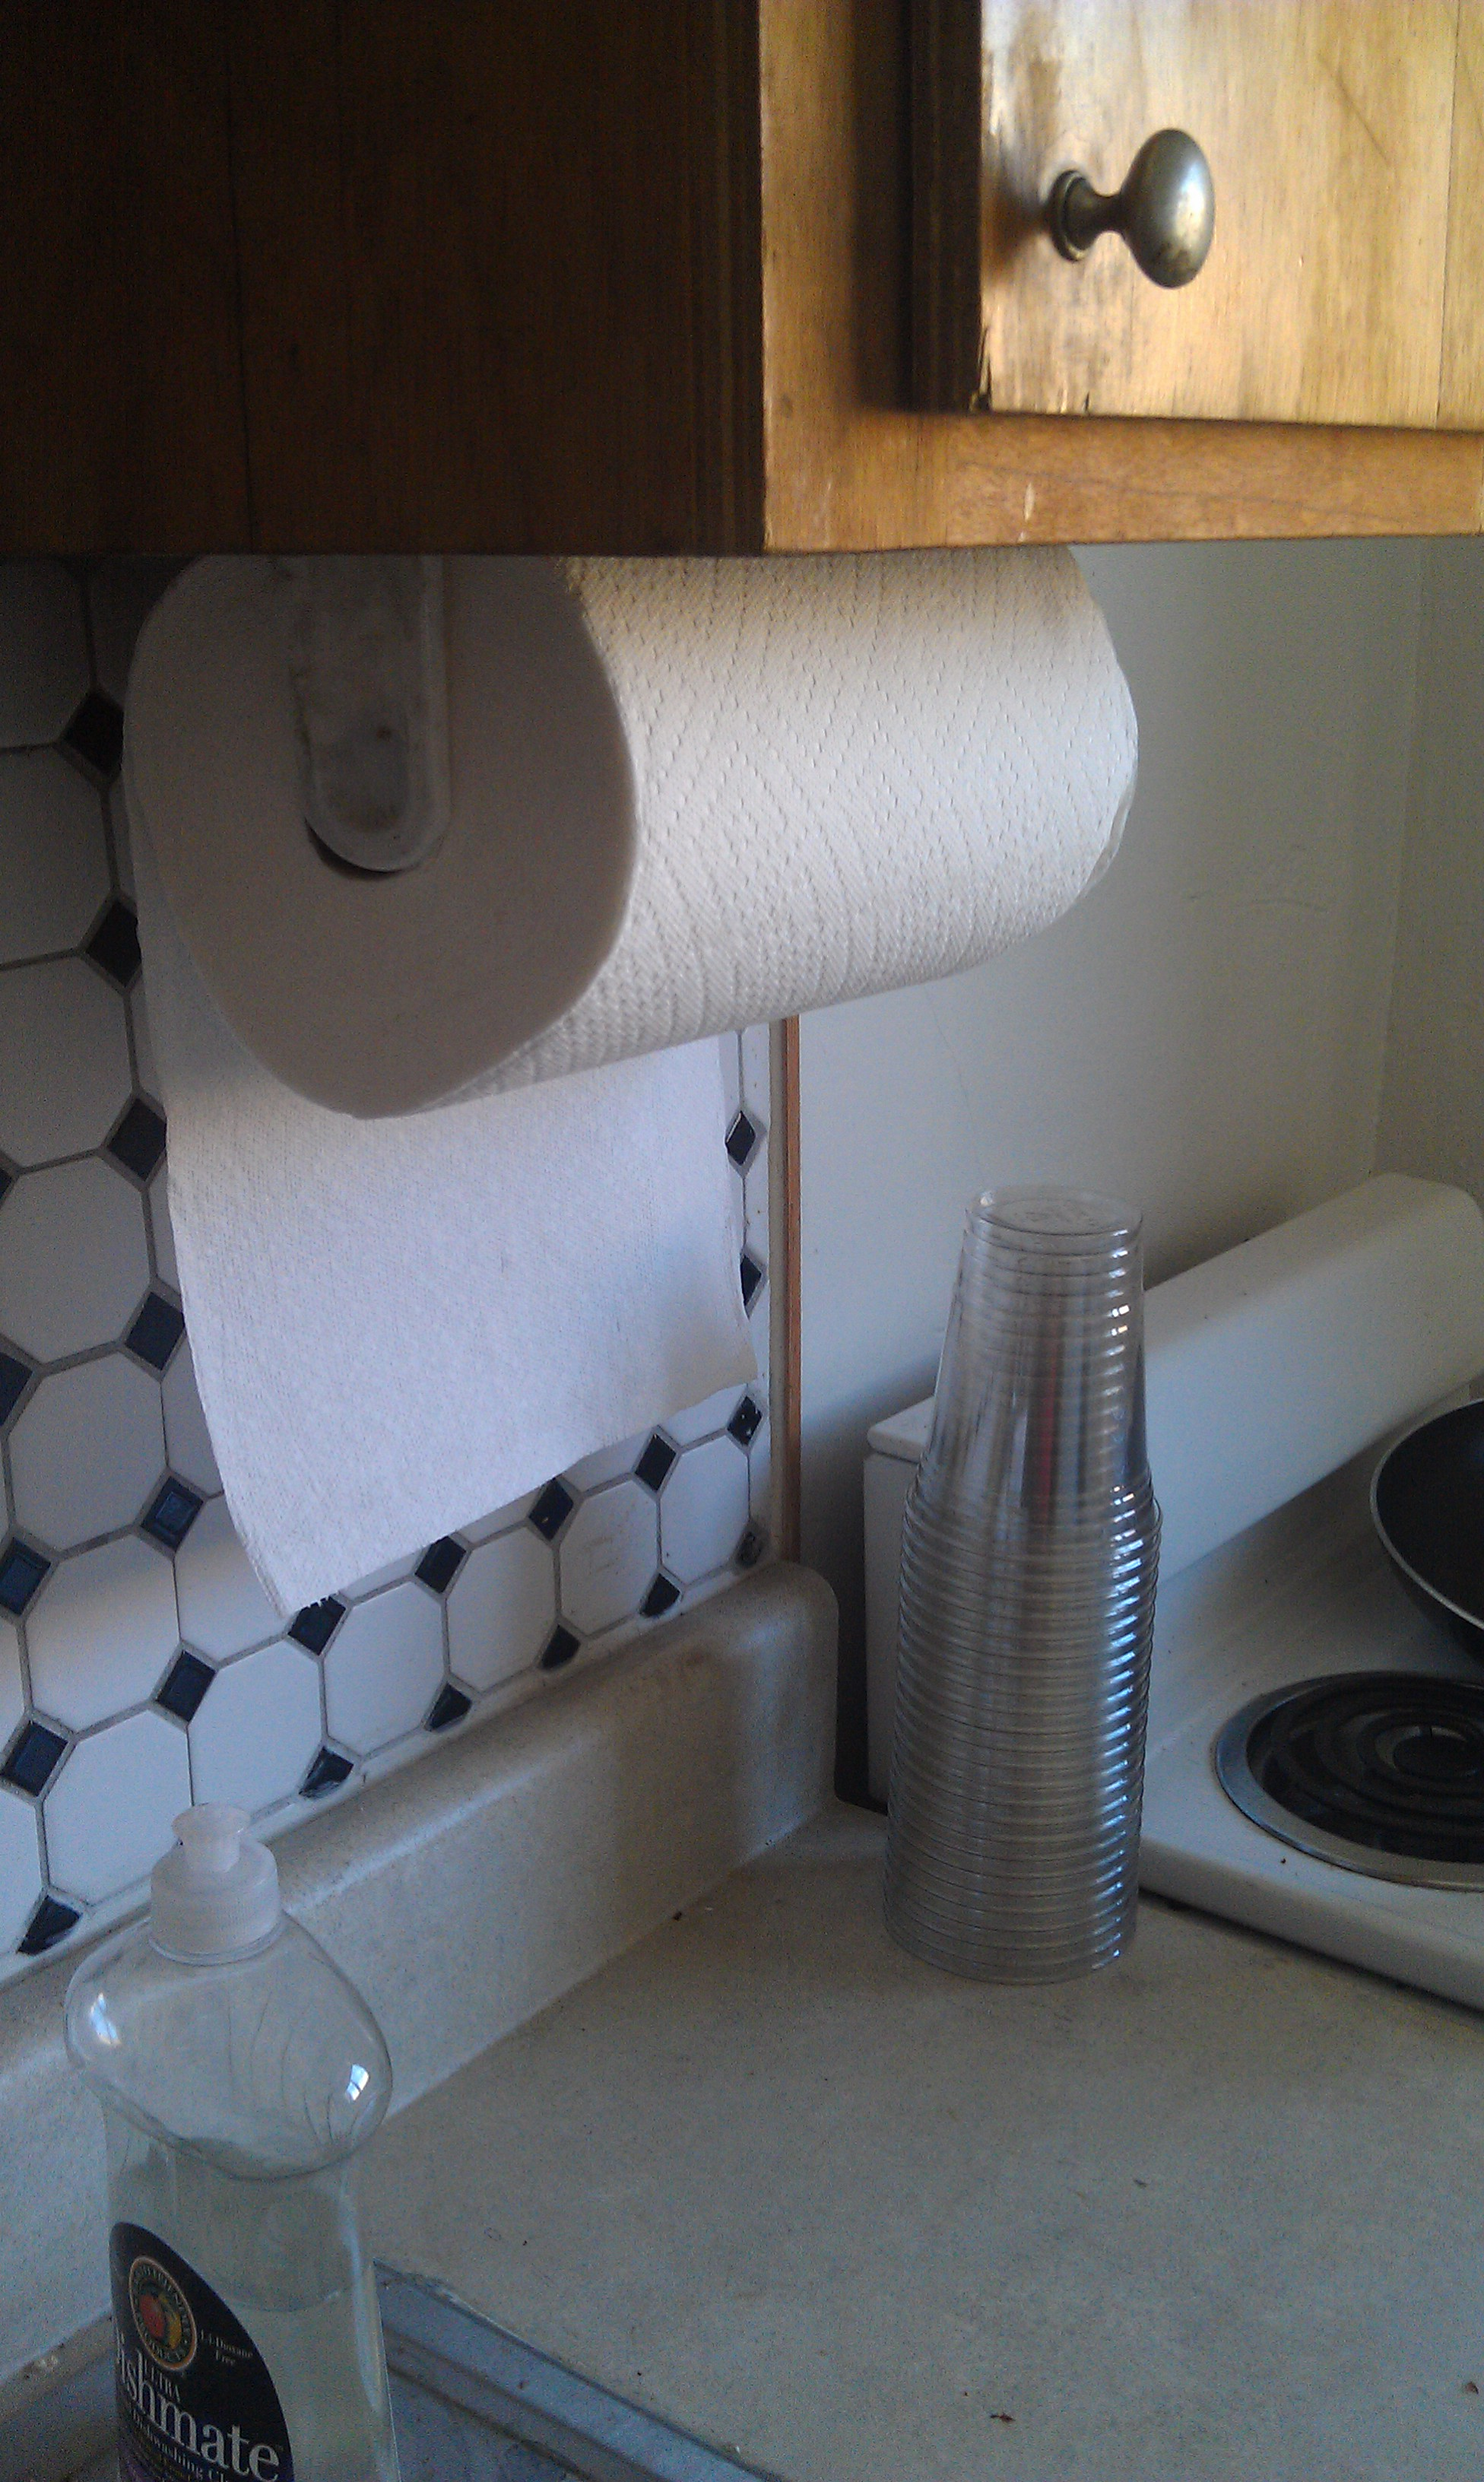 Huge Roll of Paper Towels